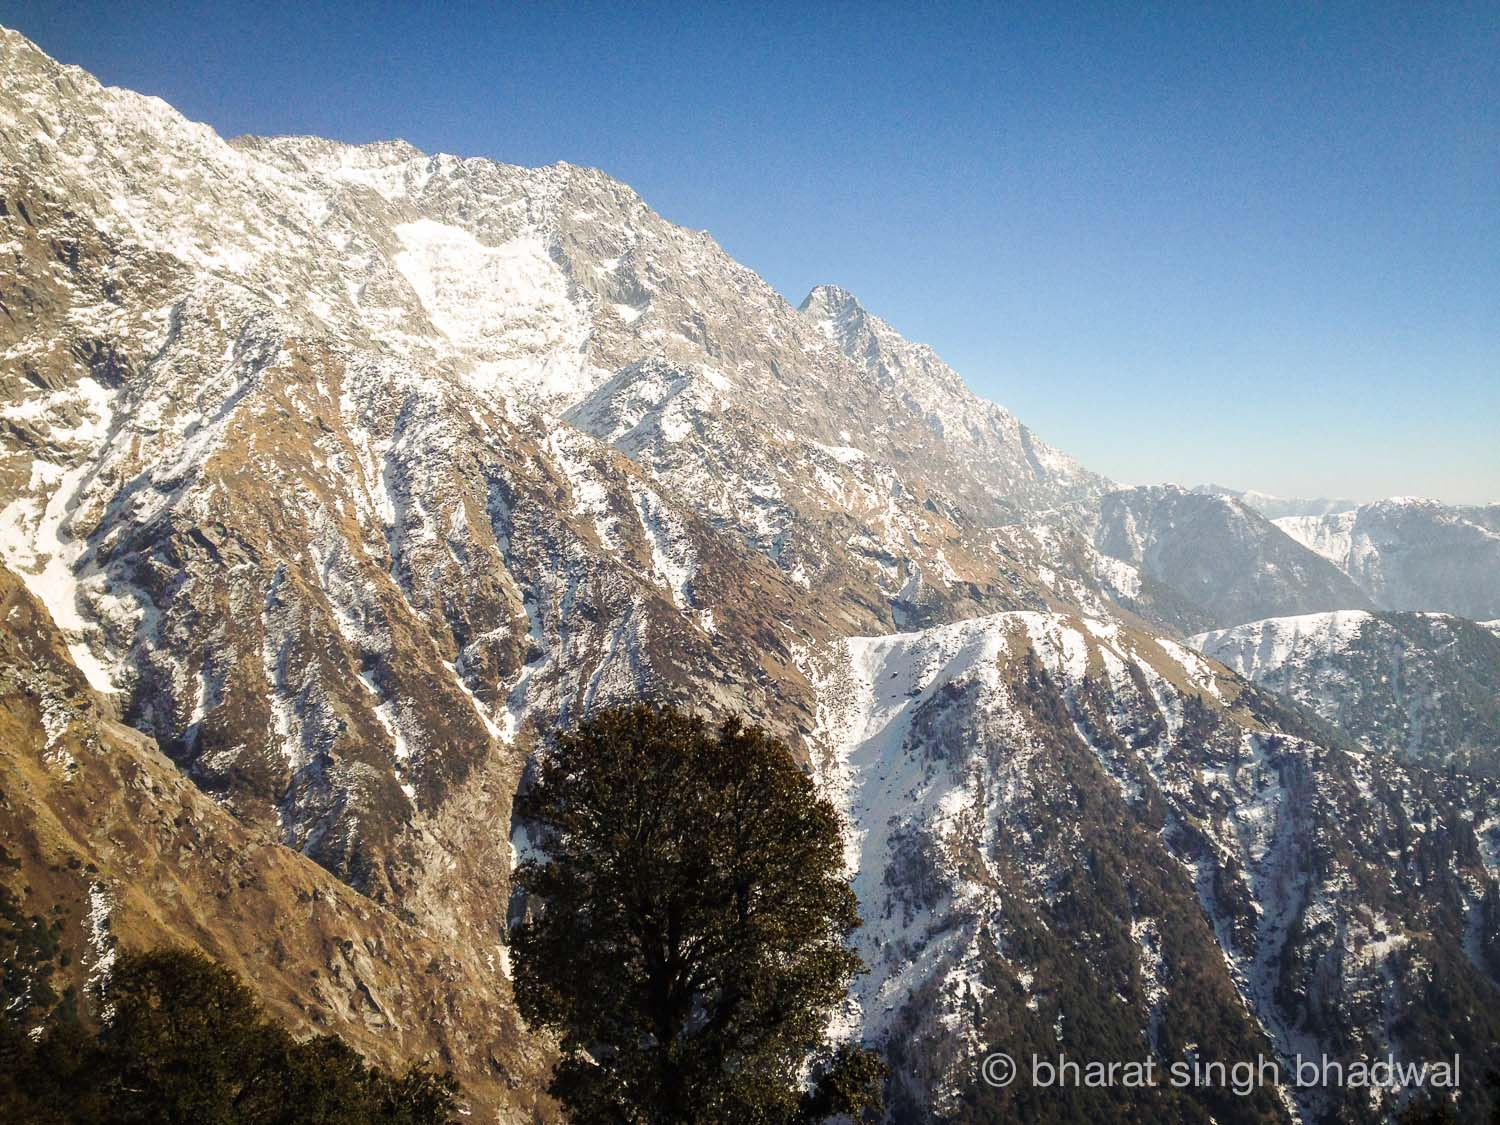 Closer to snow clad Dhauladhars